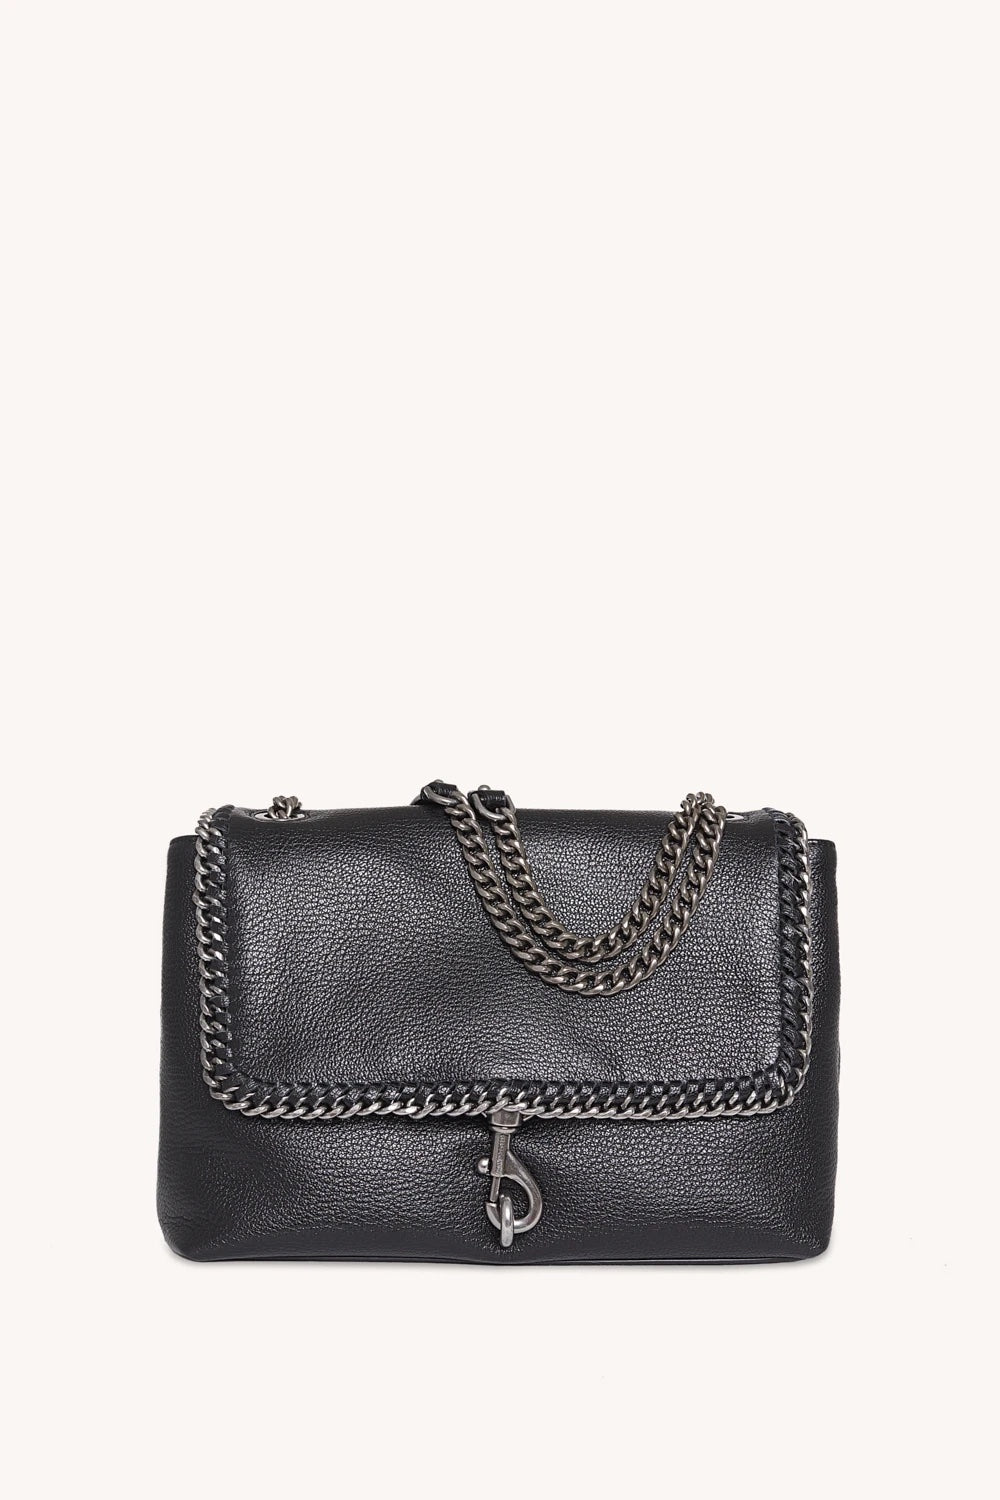 EDIE FLAP SHOULDER BAG WITH WOVEN CHAIN